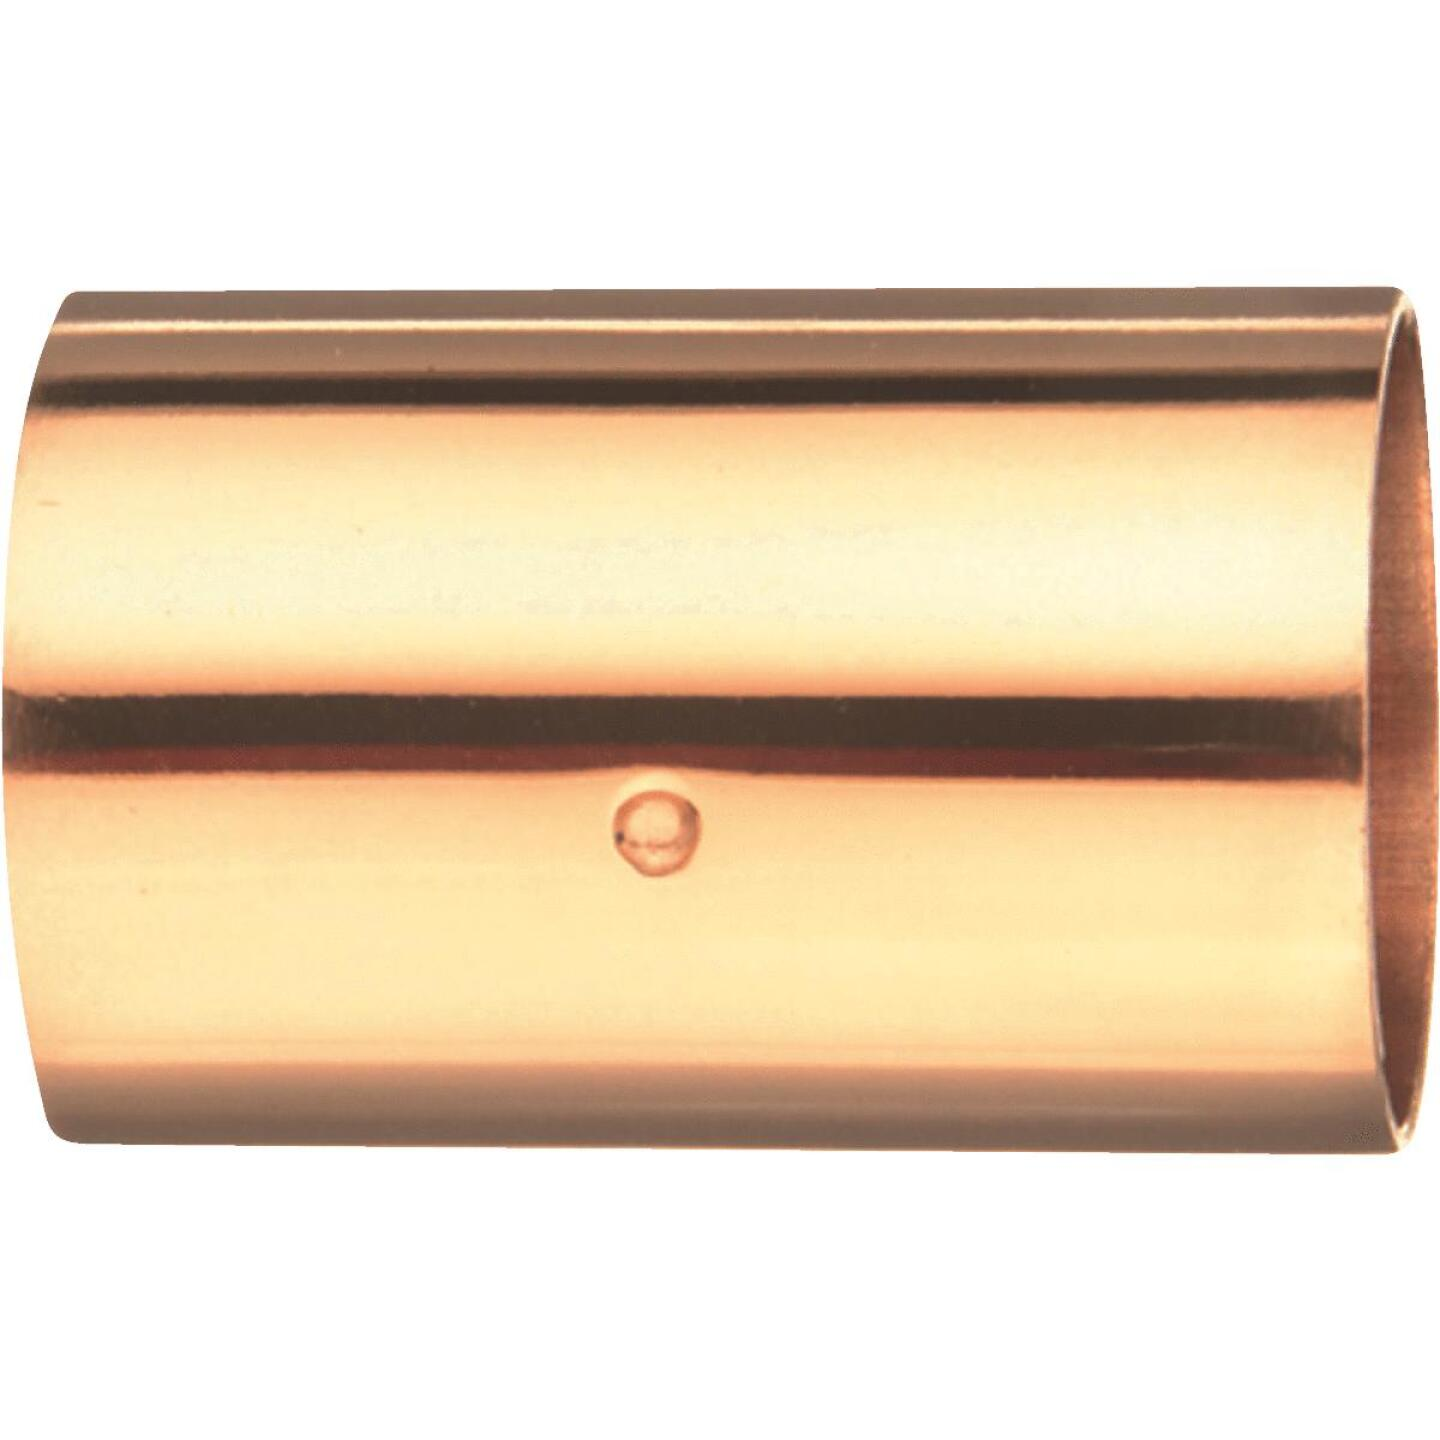 Mueller Streamline 1-1/4 In. x 1-1/4 In. Copper Coupling with Stop Image 1